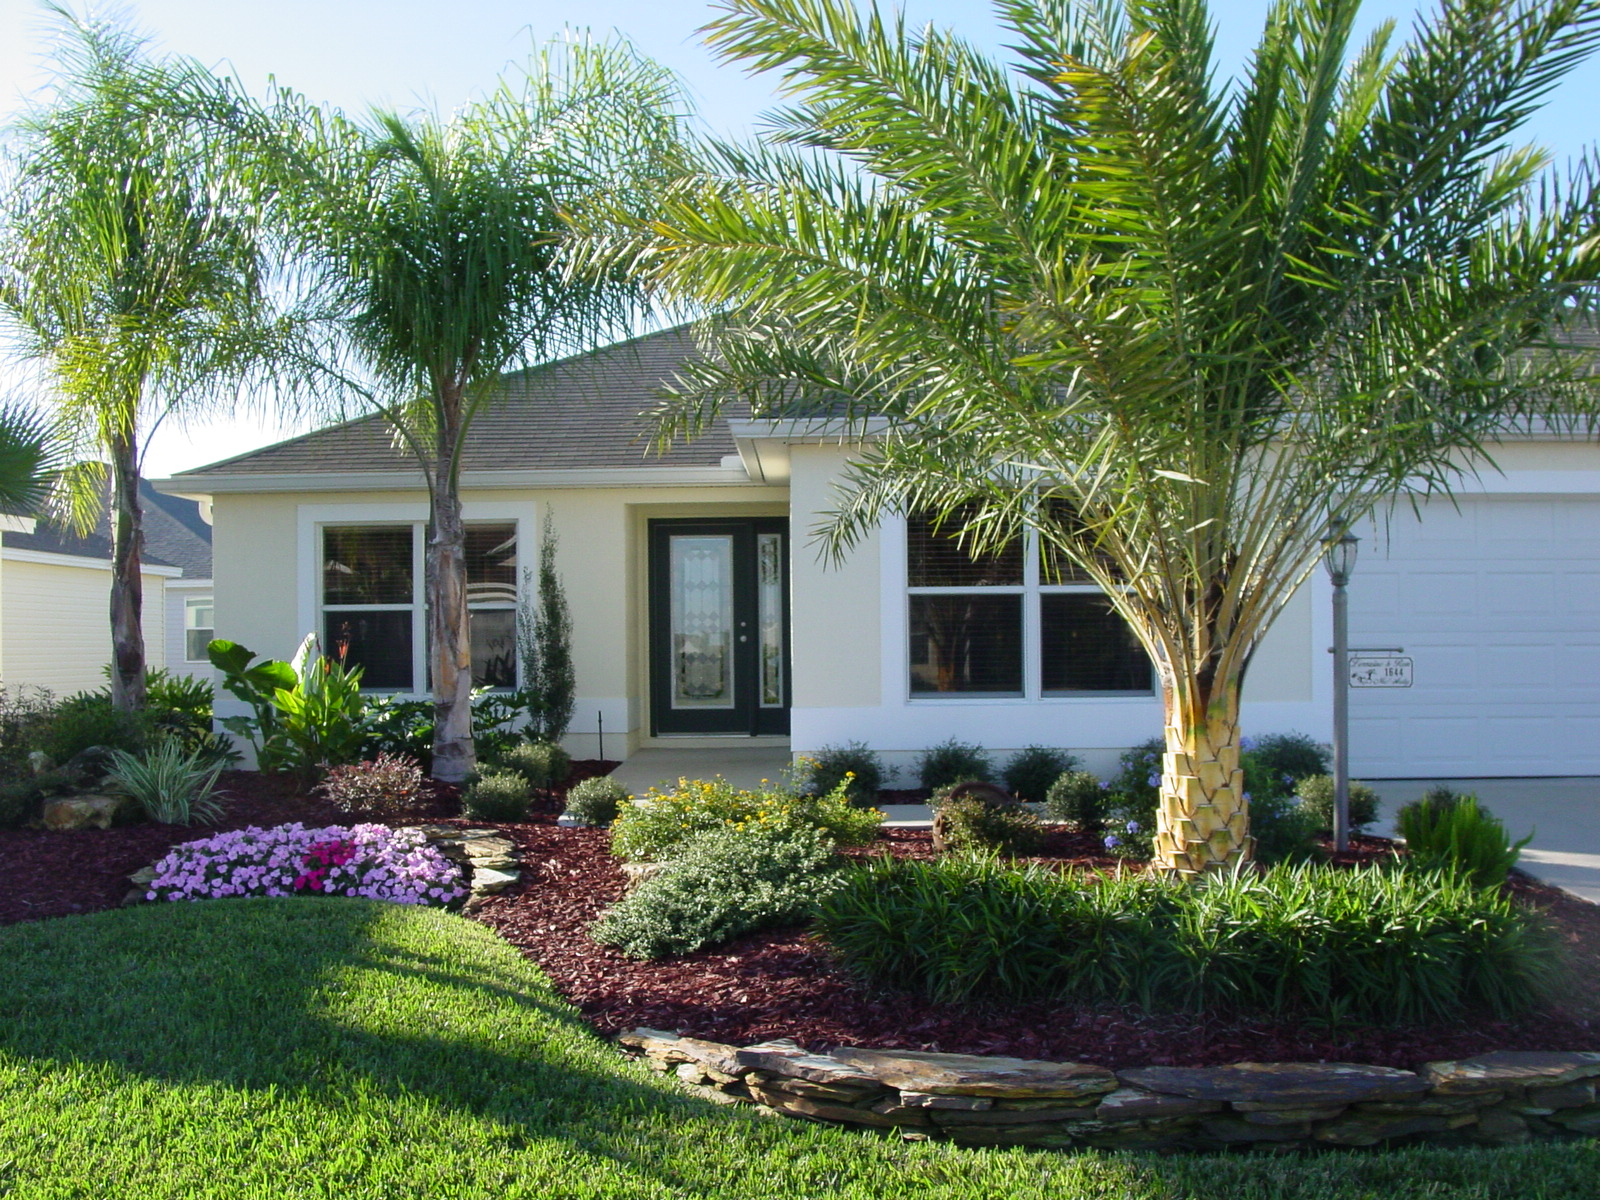 Florida garden landscape ideas photograph rons landscaping for House landscape